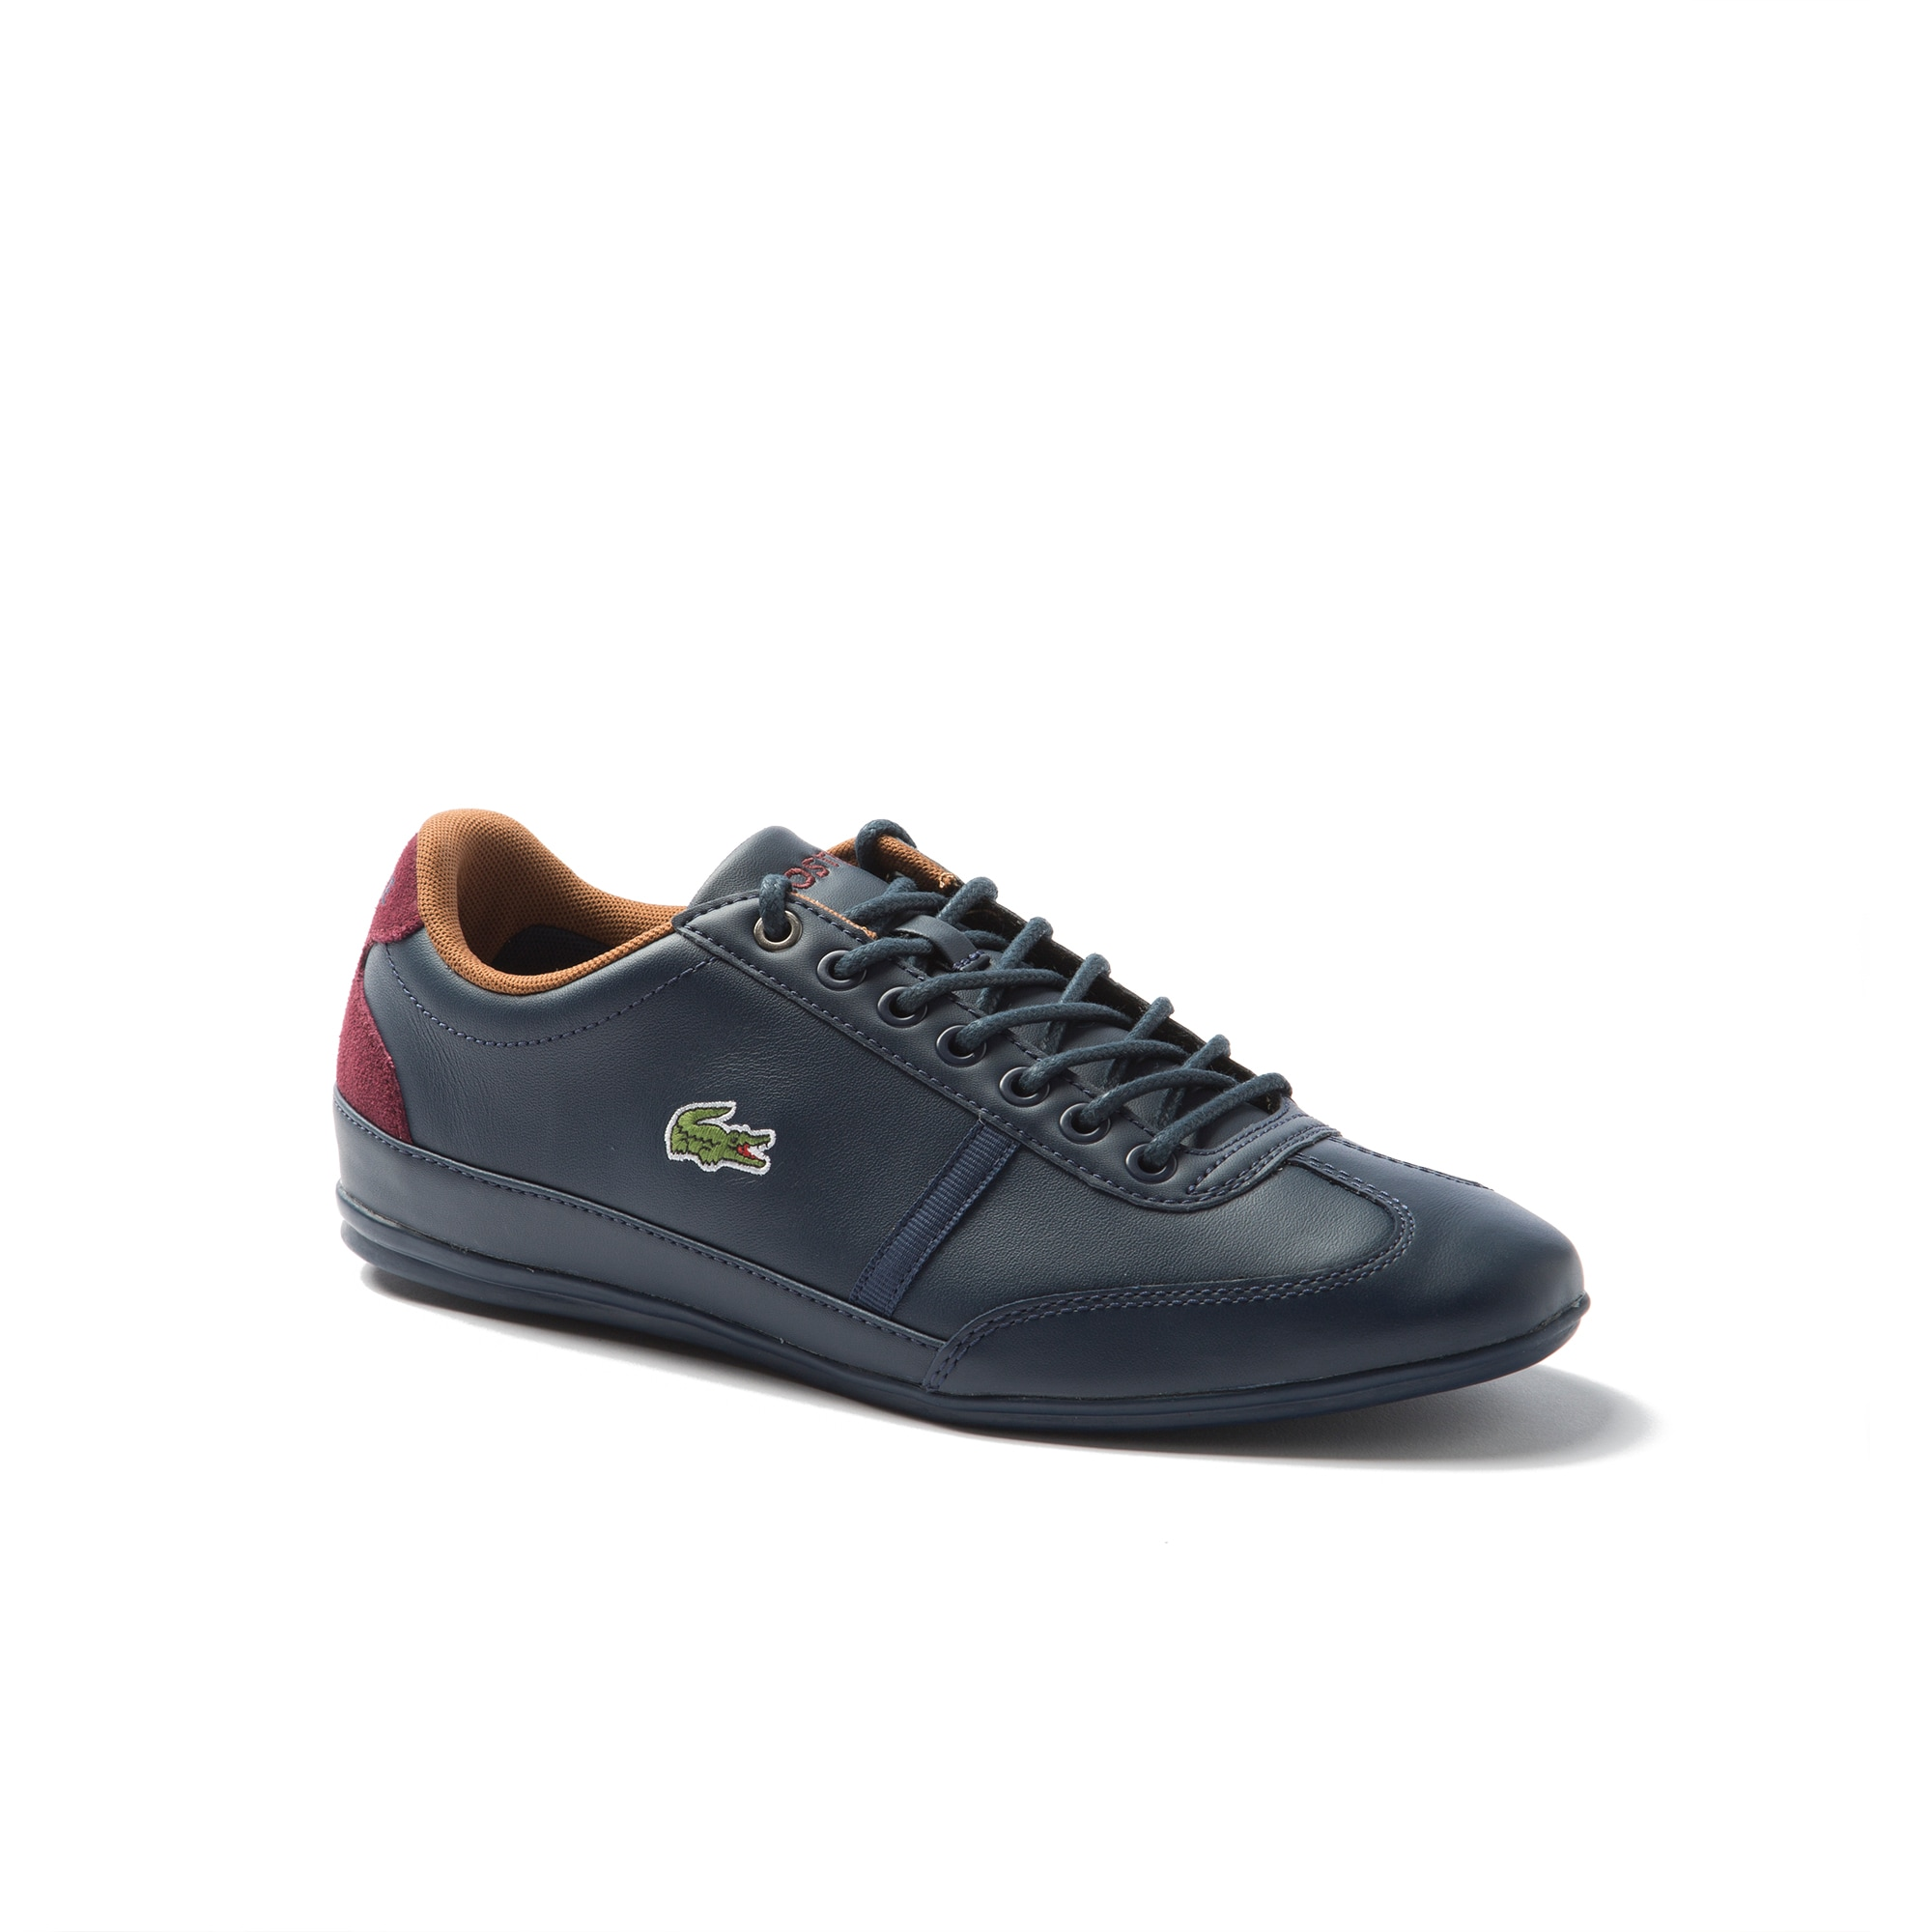 Men's Misano Sport Leather Sneakers